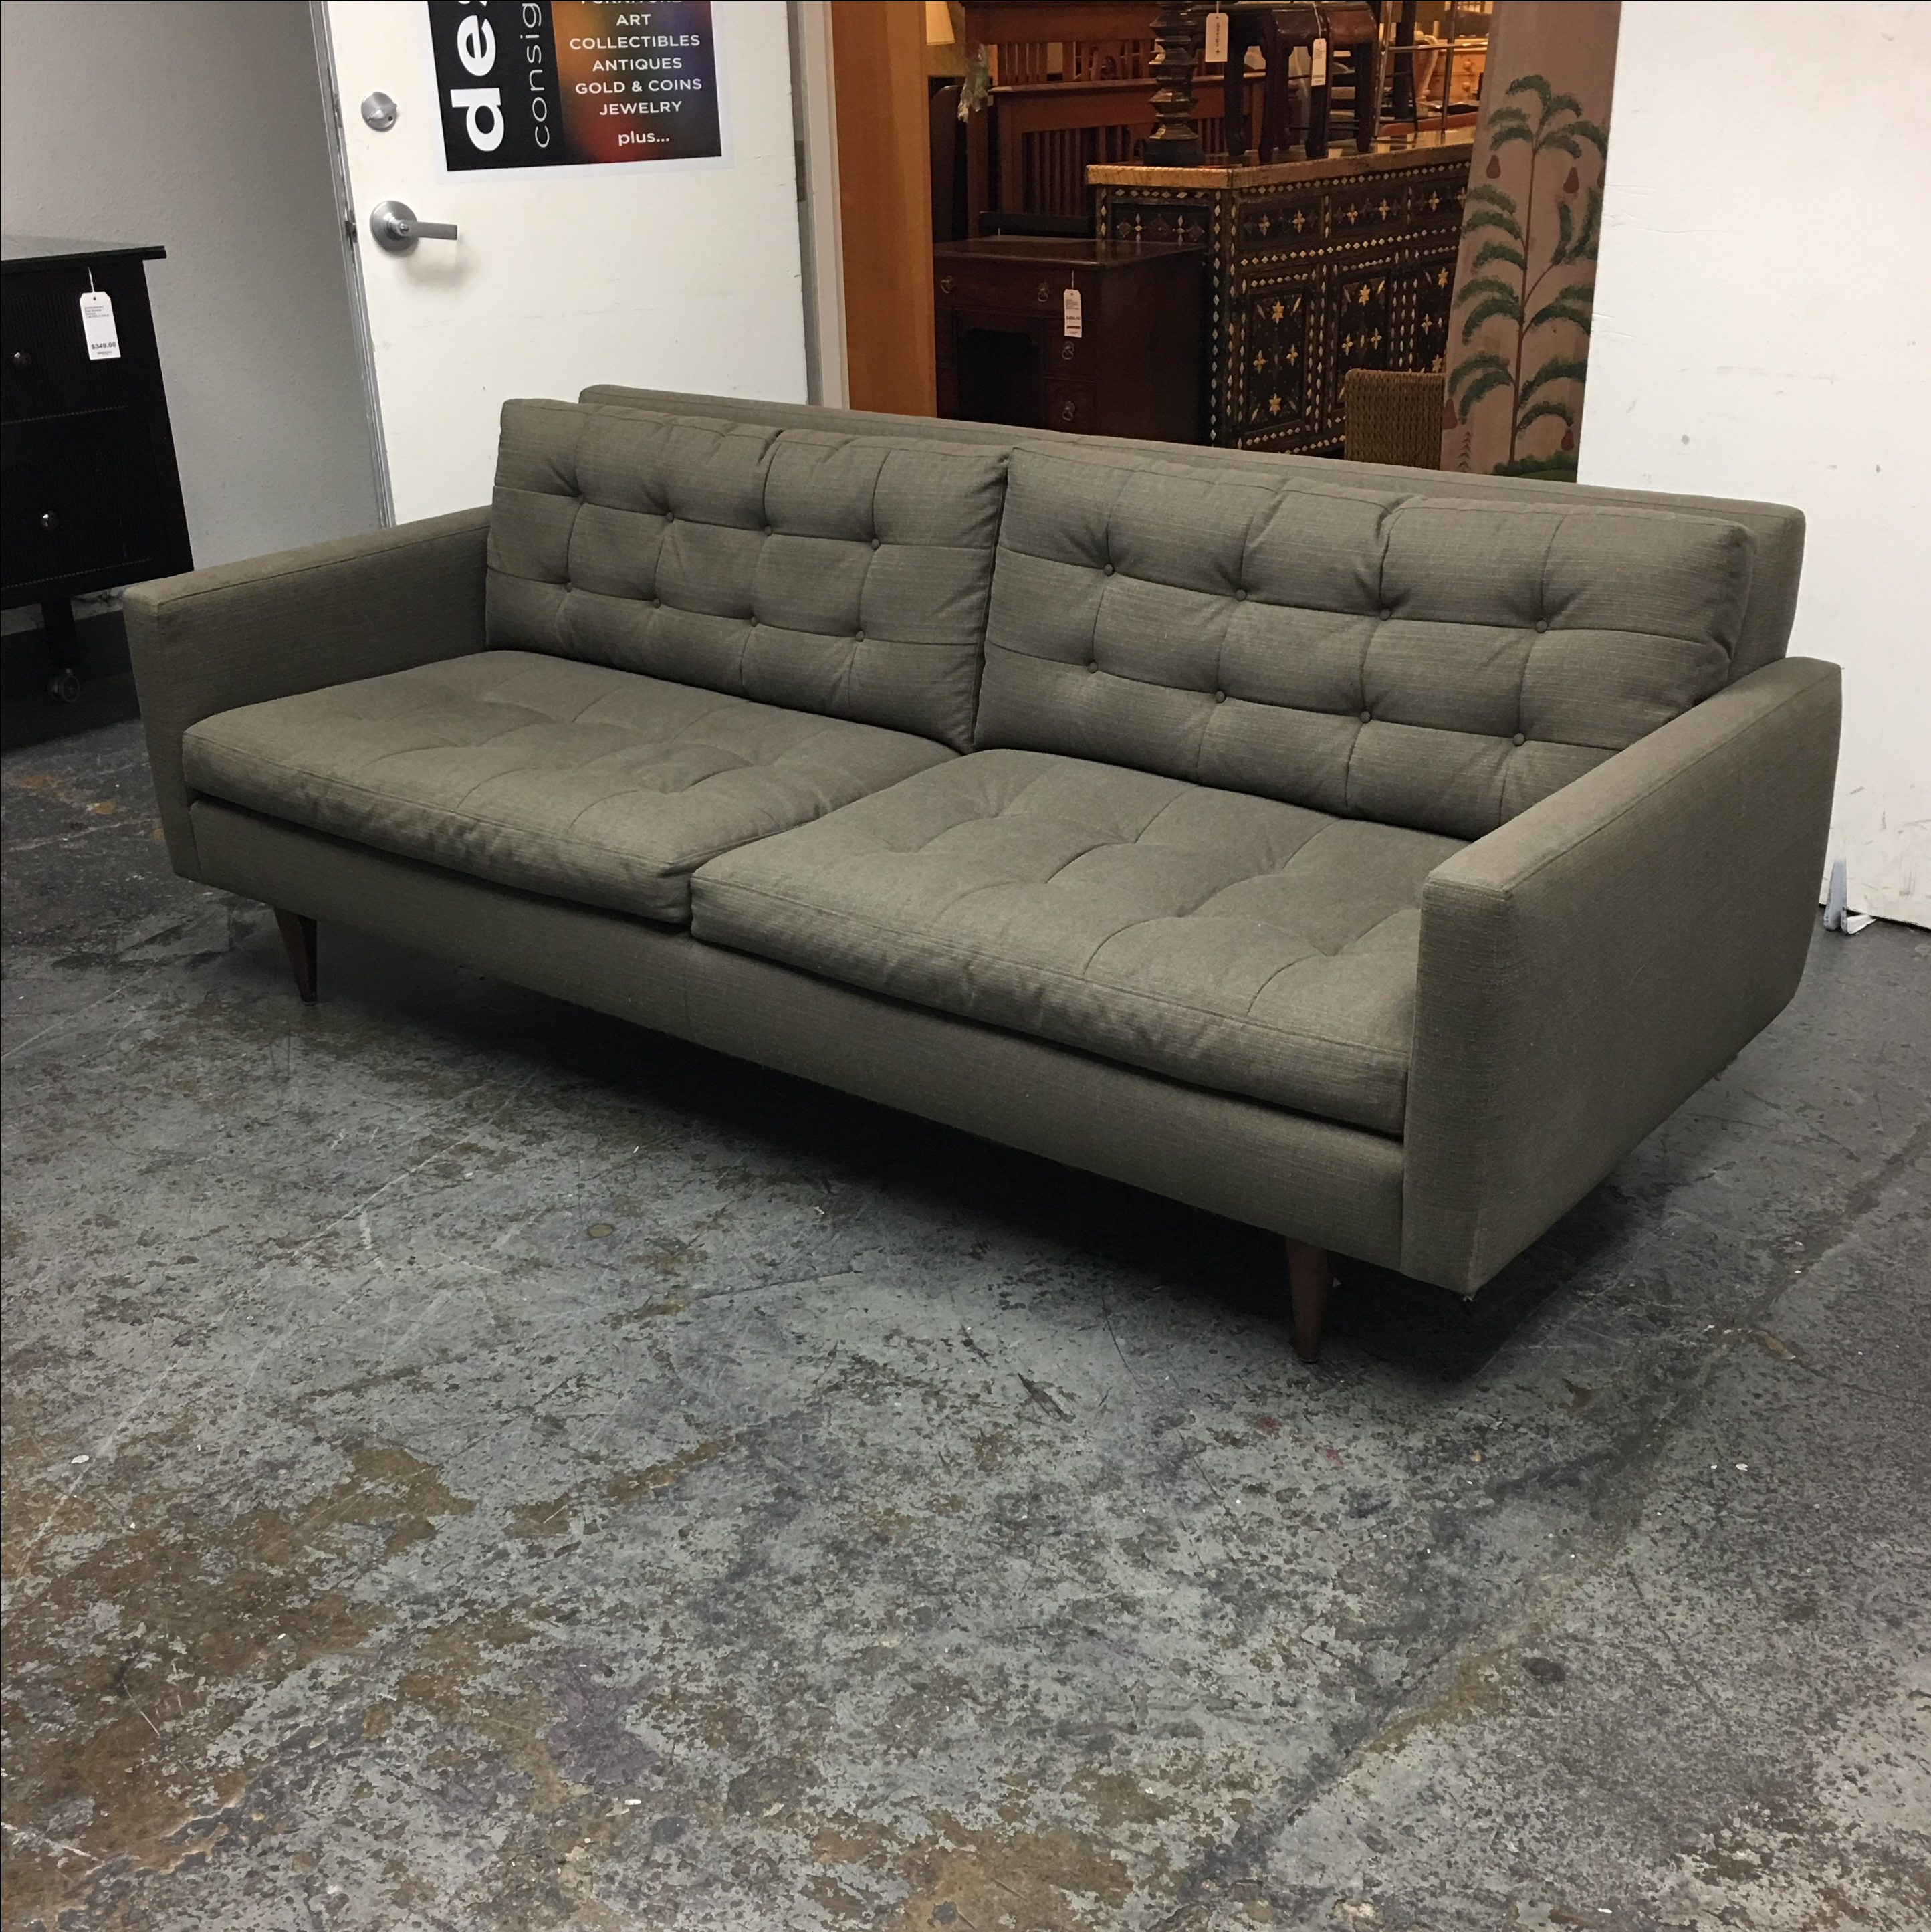 Crate Barrel Petrie Apartment Sofa Chairish